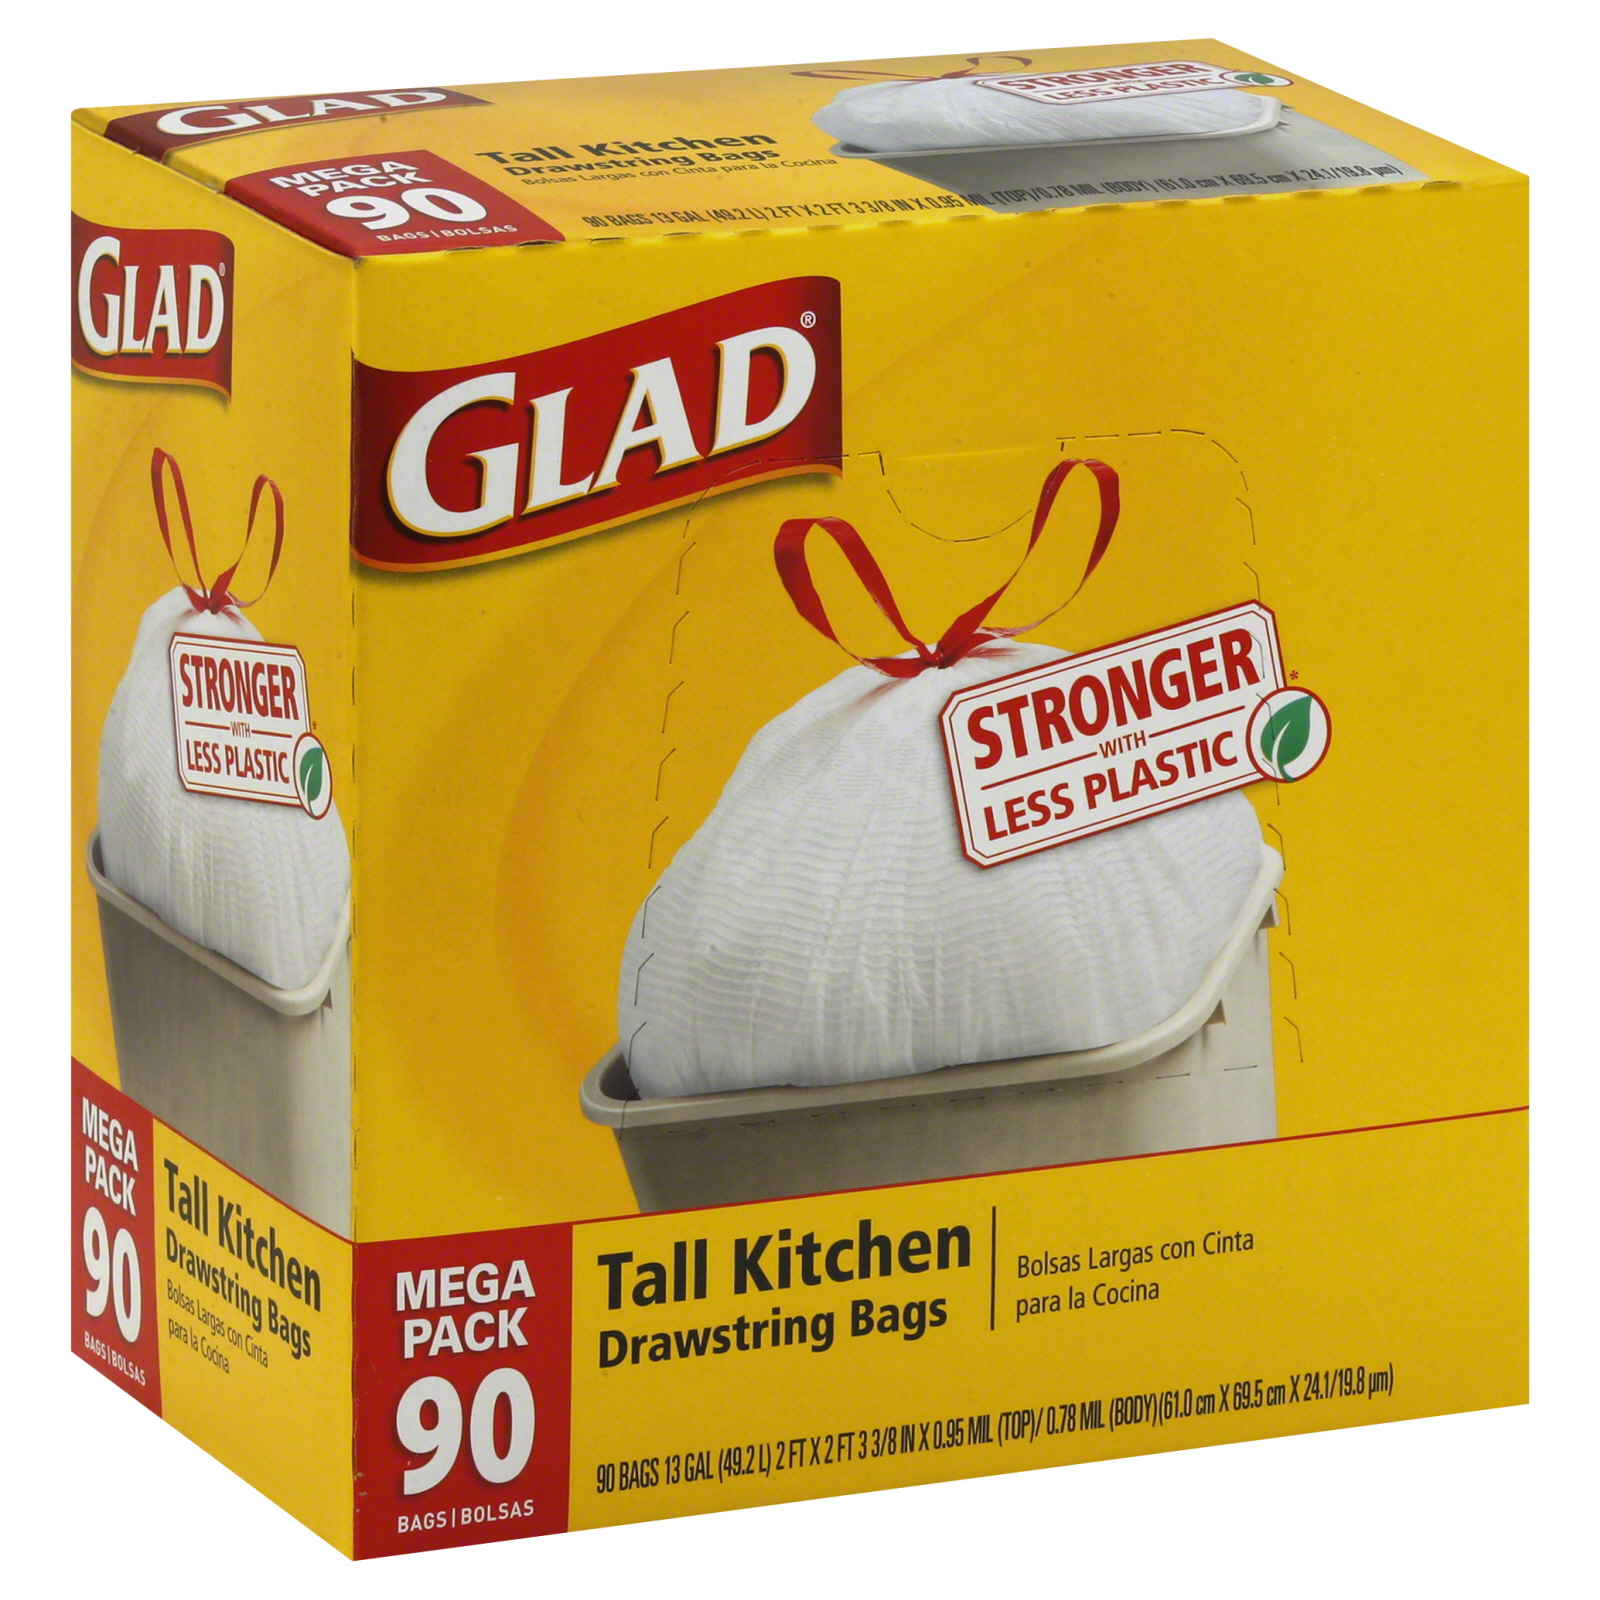 glad tall kitchen drawstring trash bags recessed lighting 13 gal 90 pack